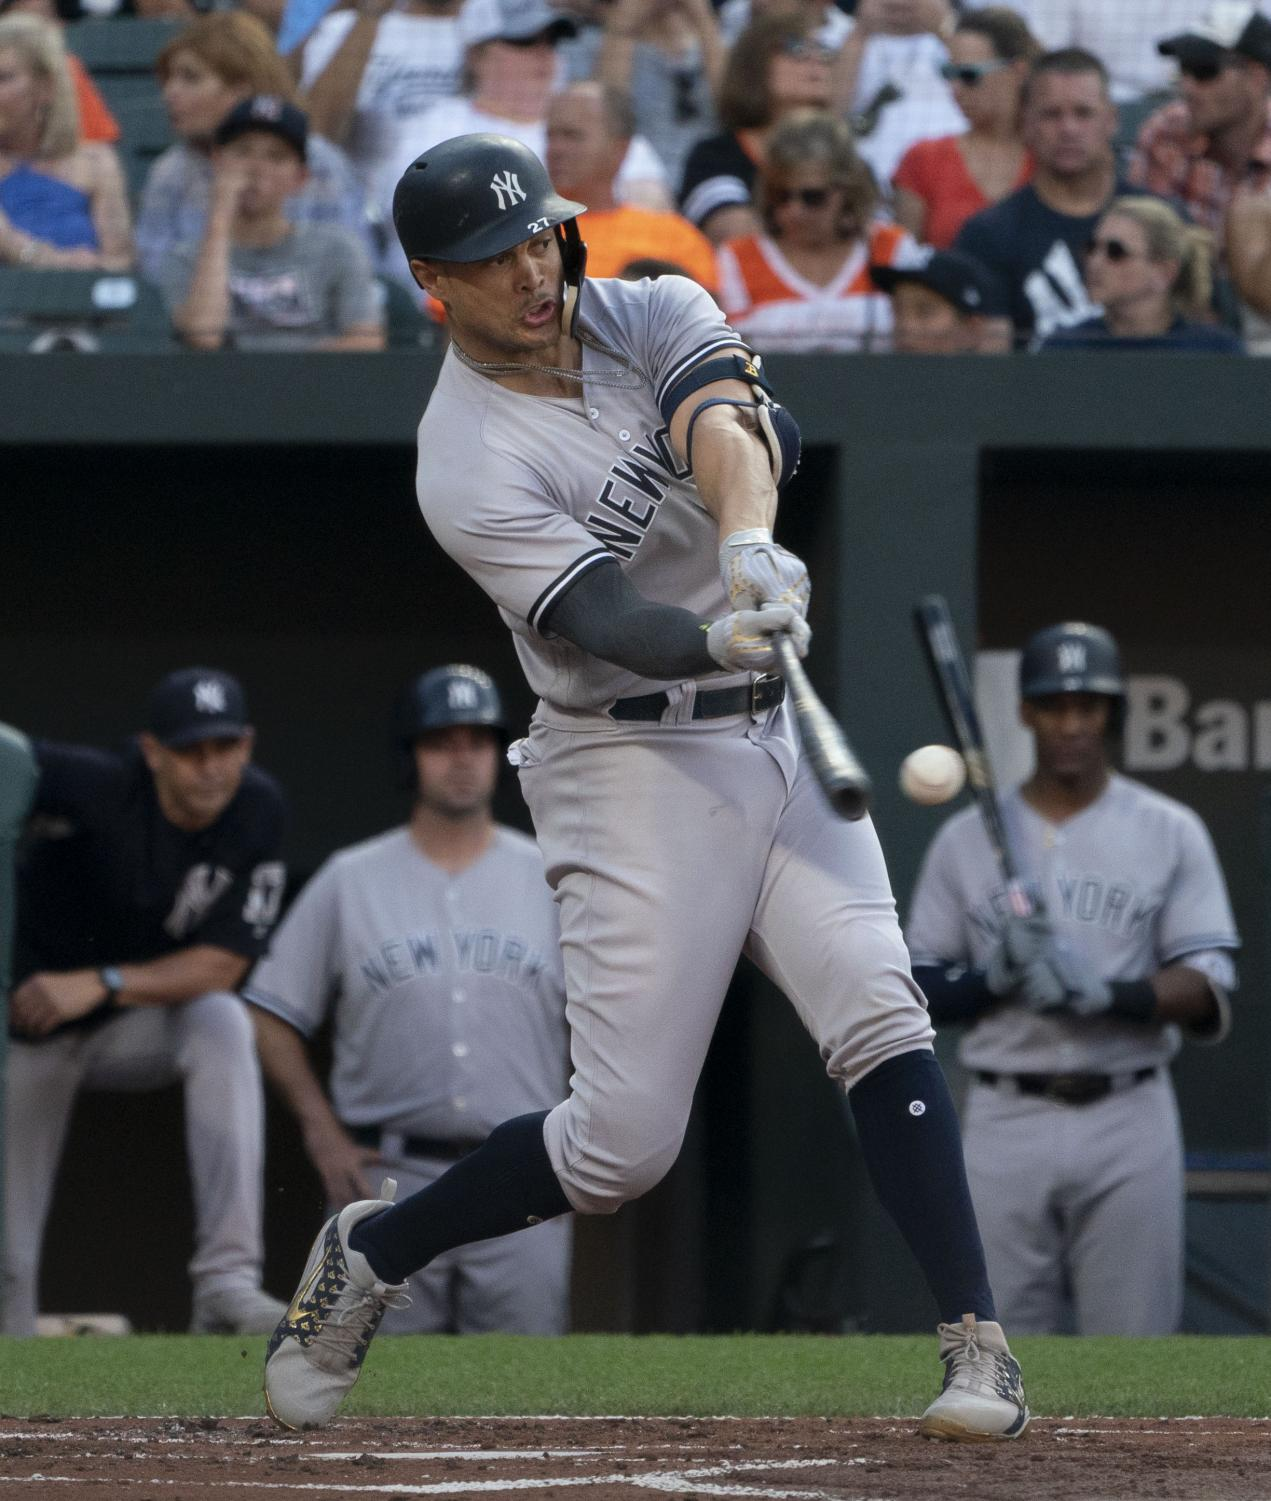 Giancarlo Stanton is one of several athletes that has become victim of the increase of injuries in modern sports